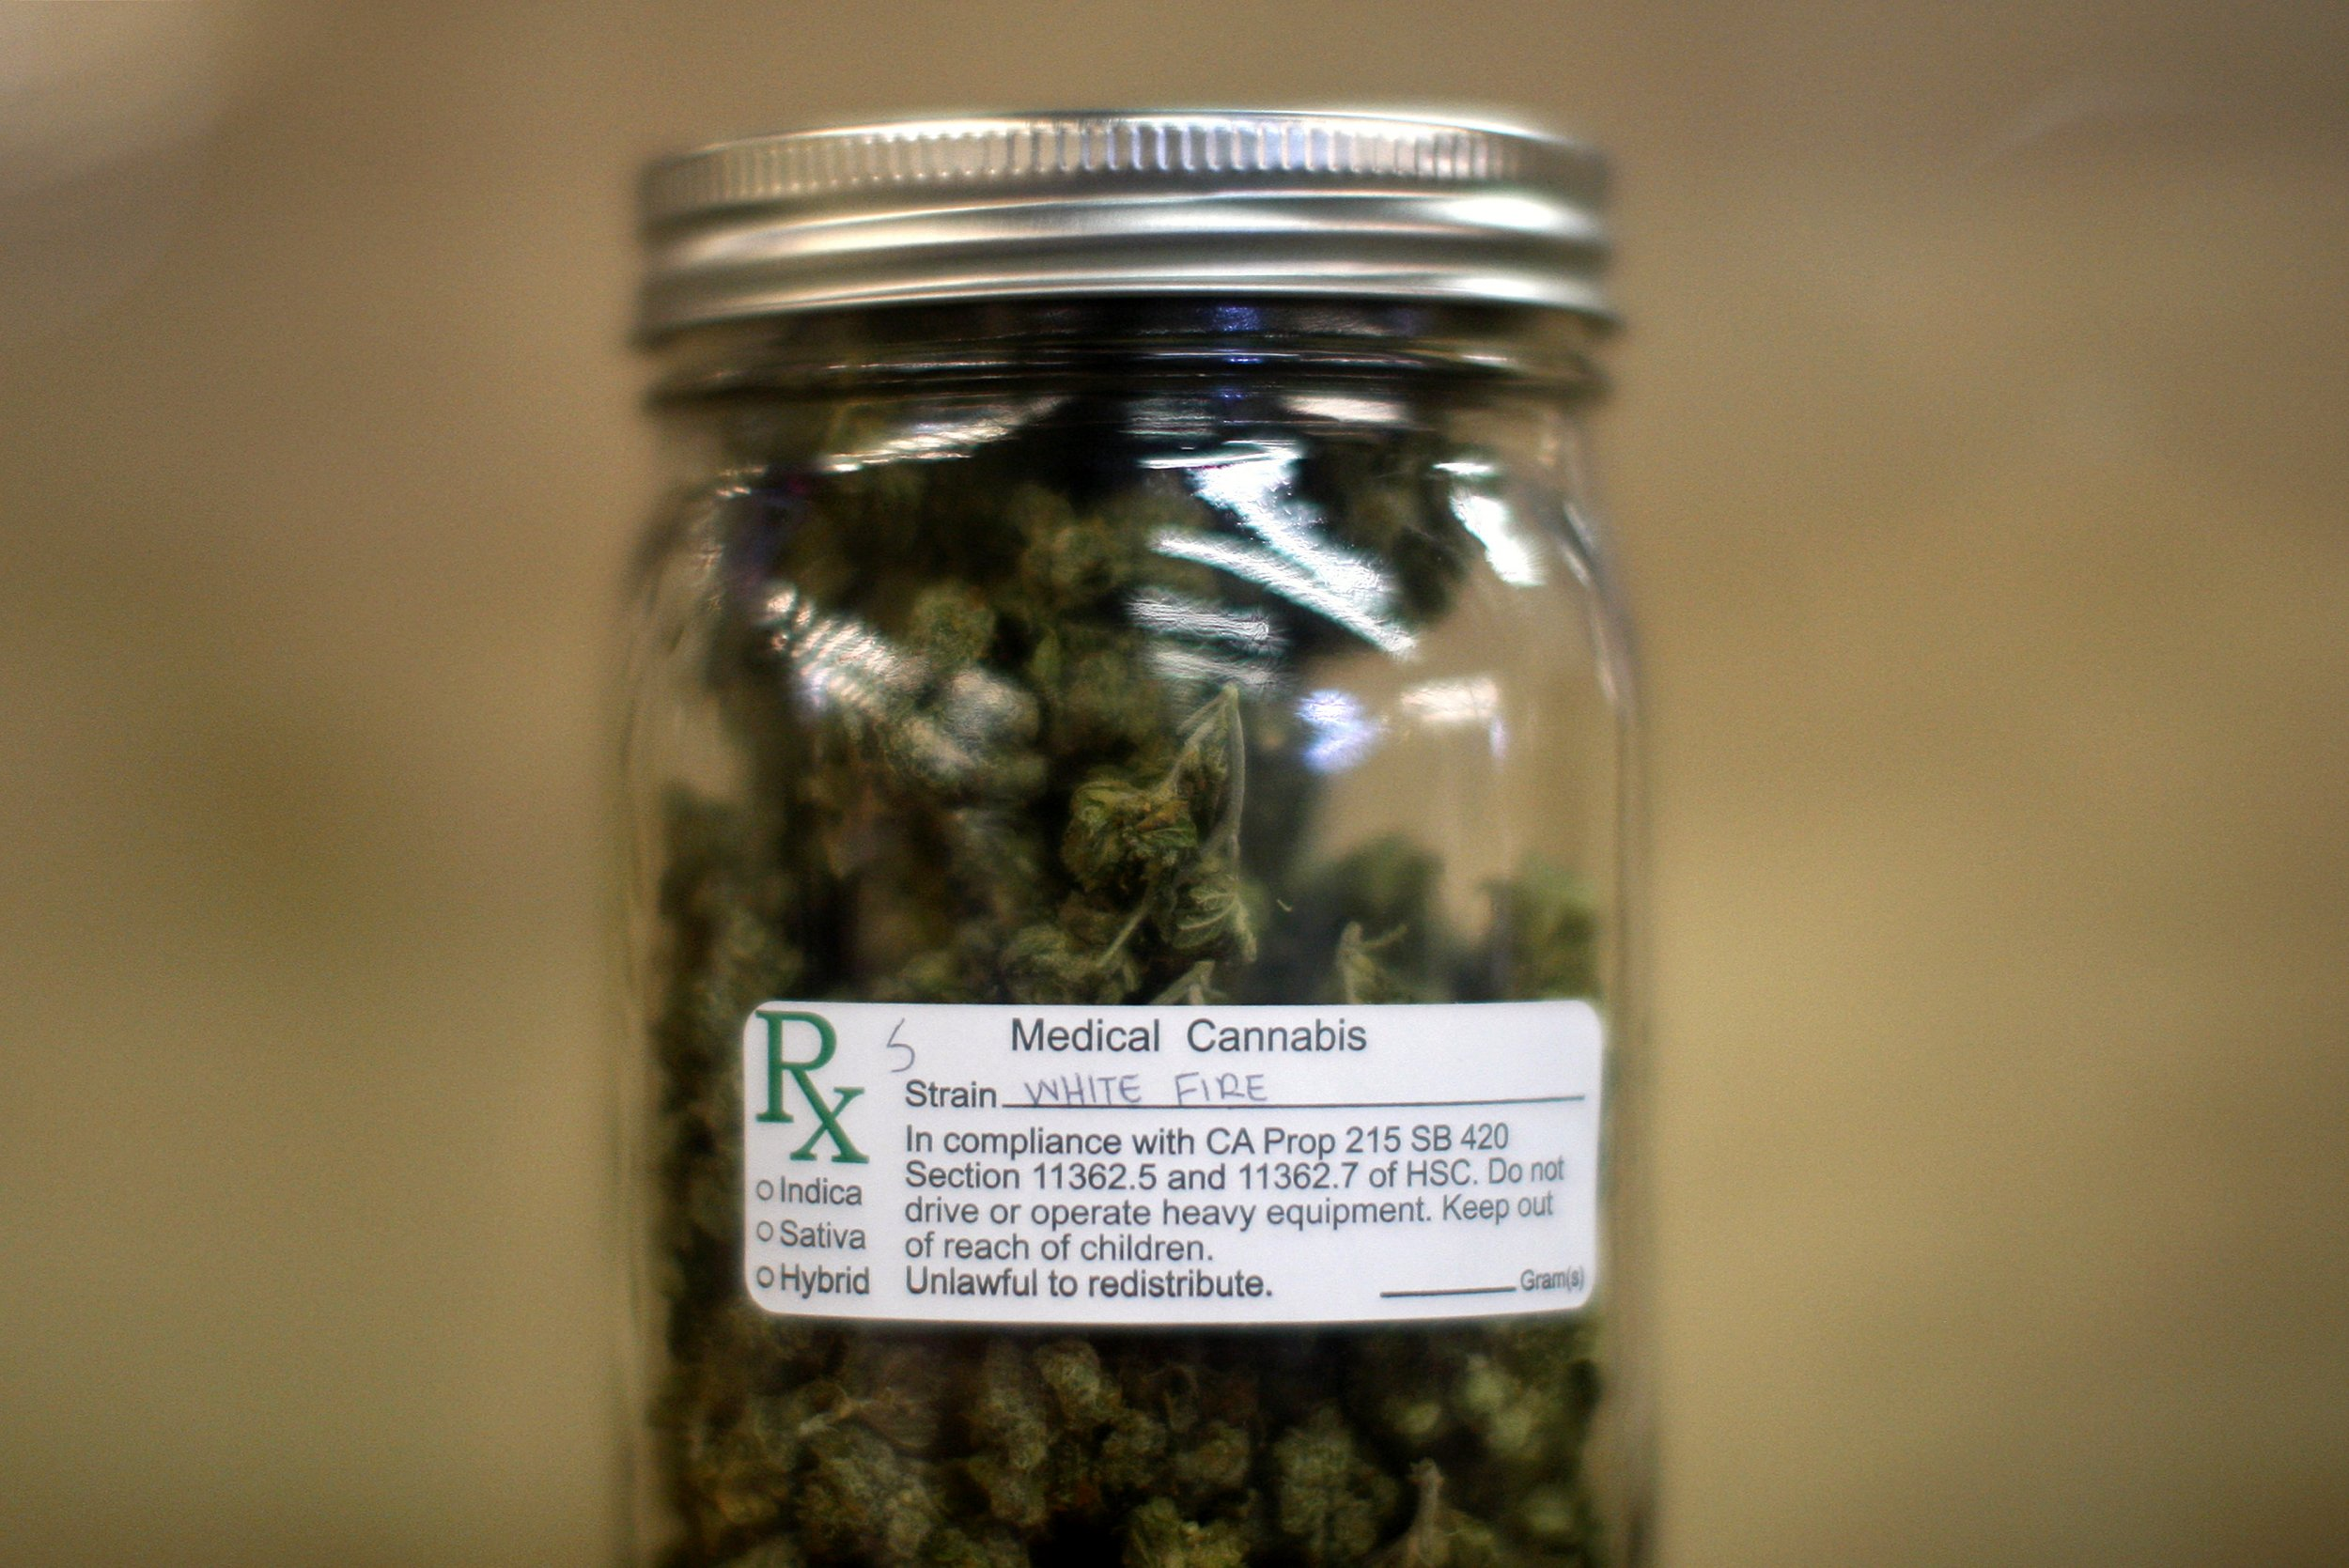 the conflict between federal and state marijuana laws claims a victim